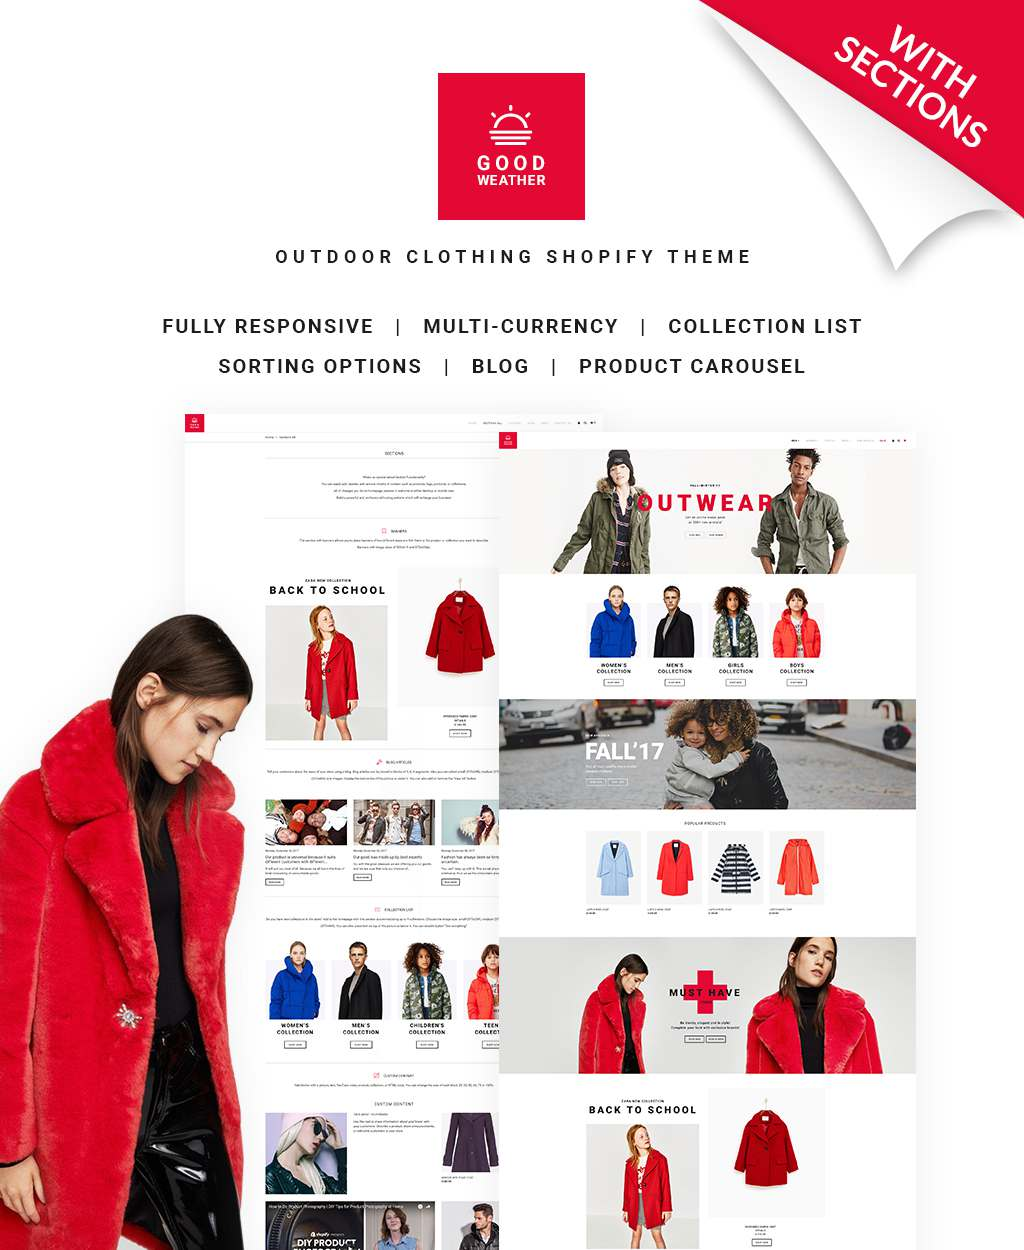 GoodWeather - Outdoor Clothing Shopify Theme TMT Pearce Peregrine